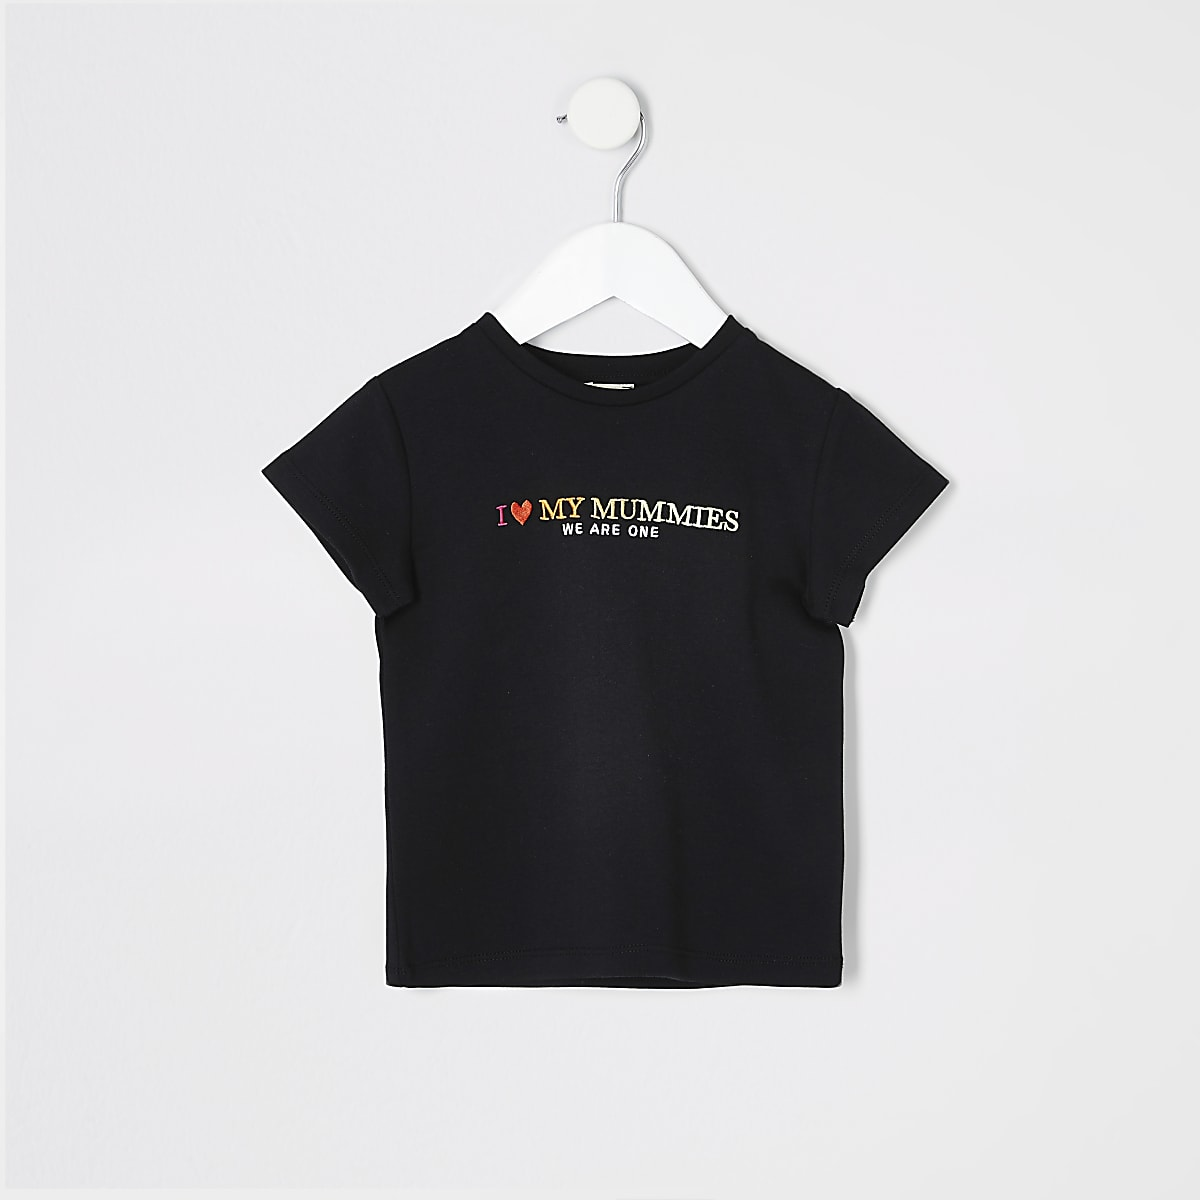 Mini kids black 'We are one' pride T-shirt